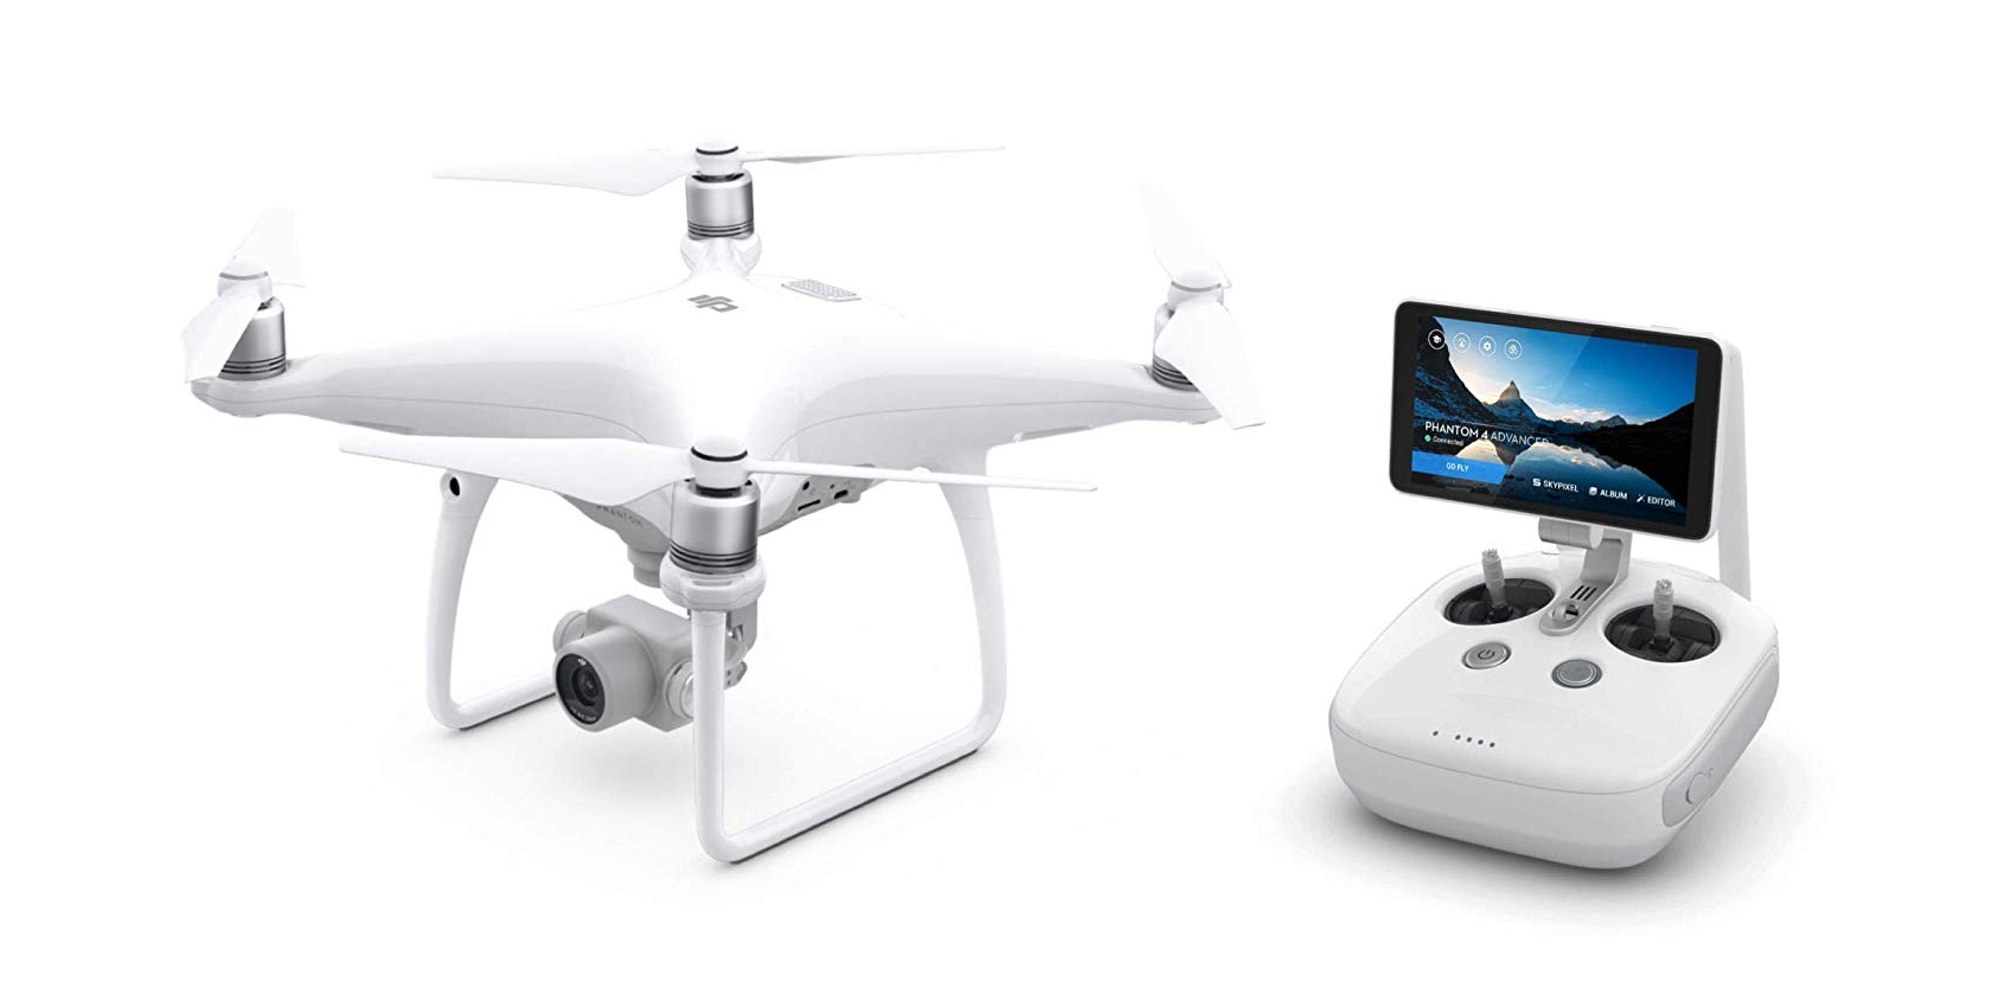 Capture 4K aerial shots w/ DJI's Phantom 4 Advanced+ at its lowest price yet: $1,049 (30% off)